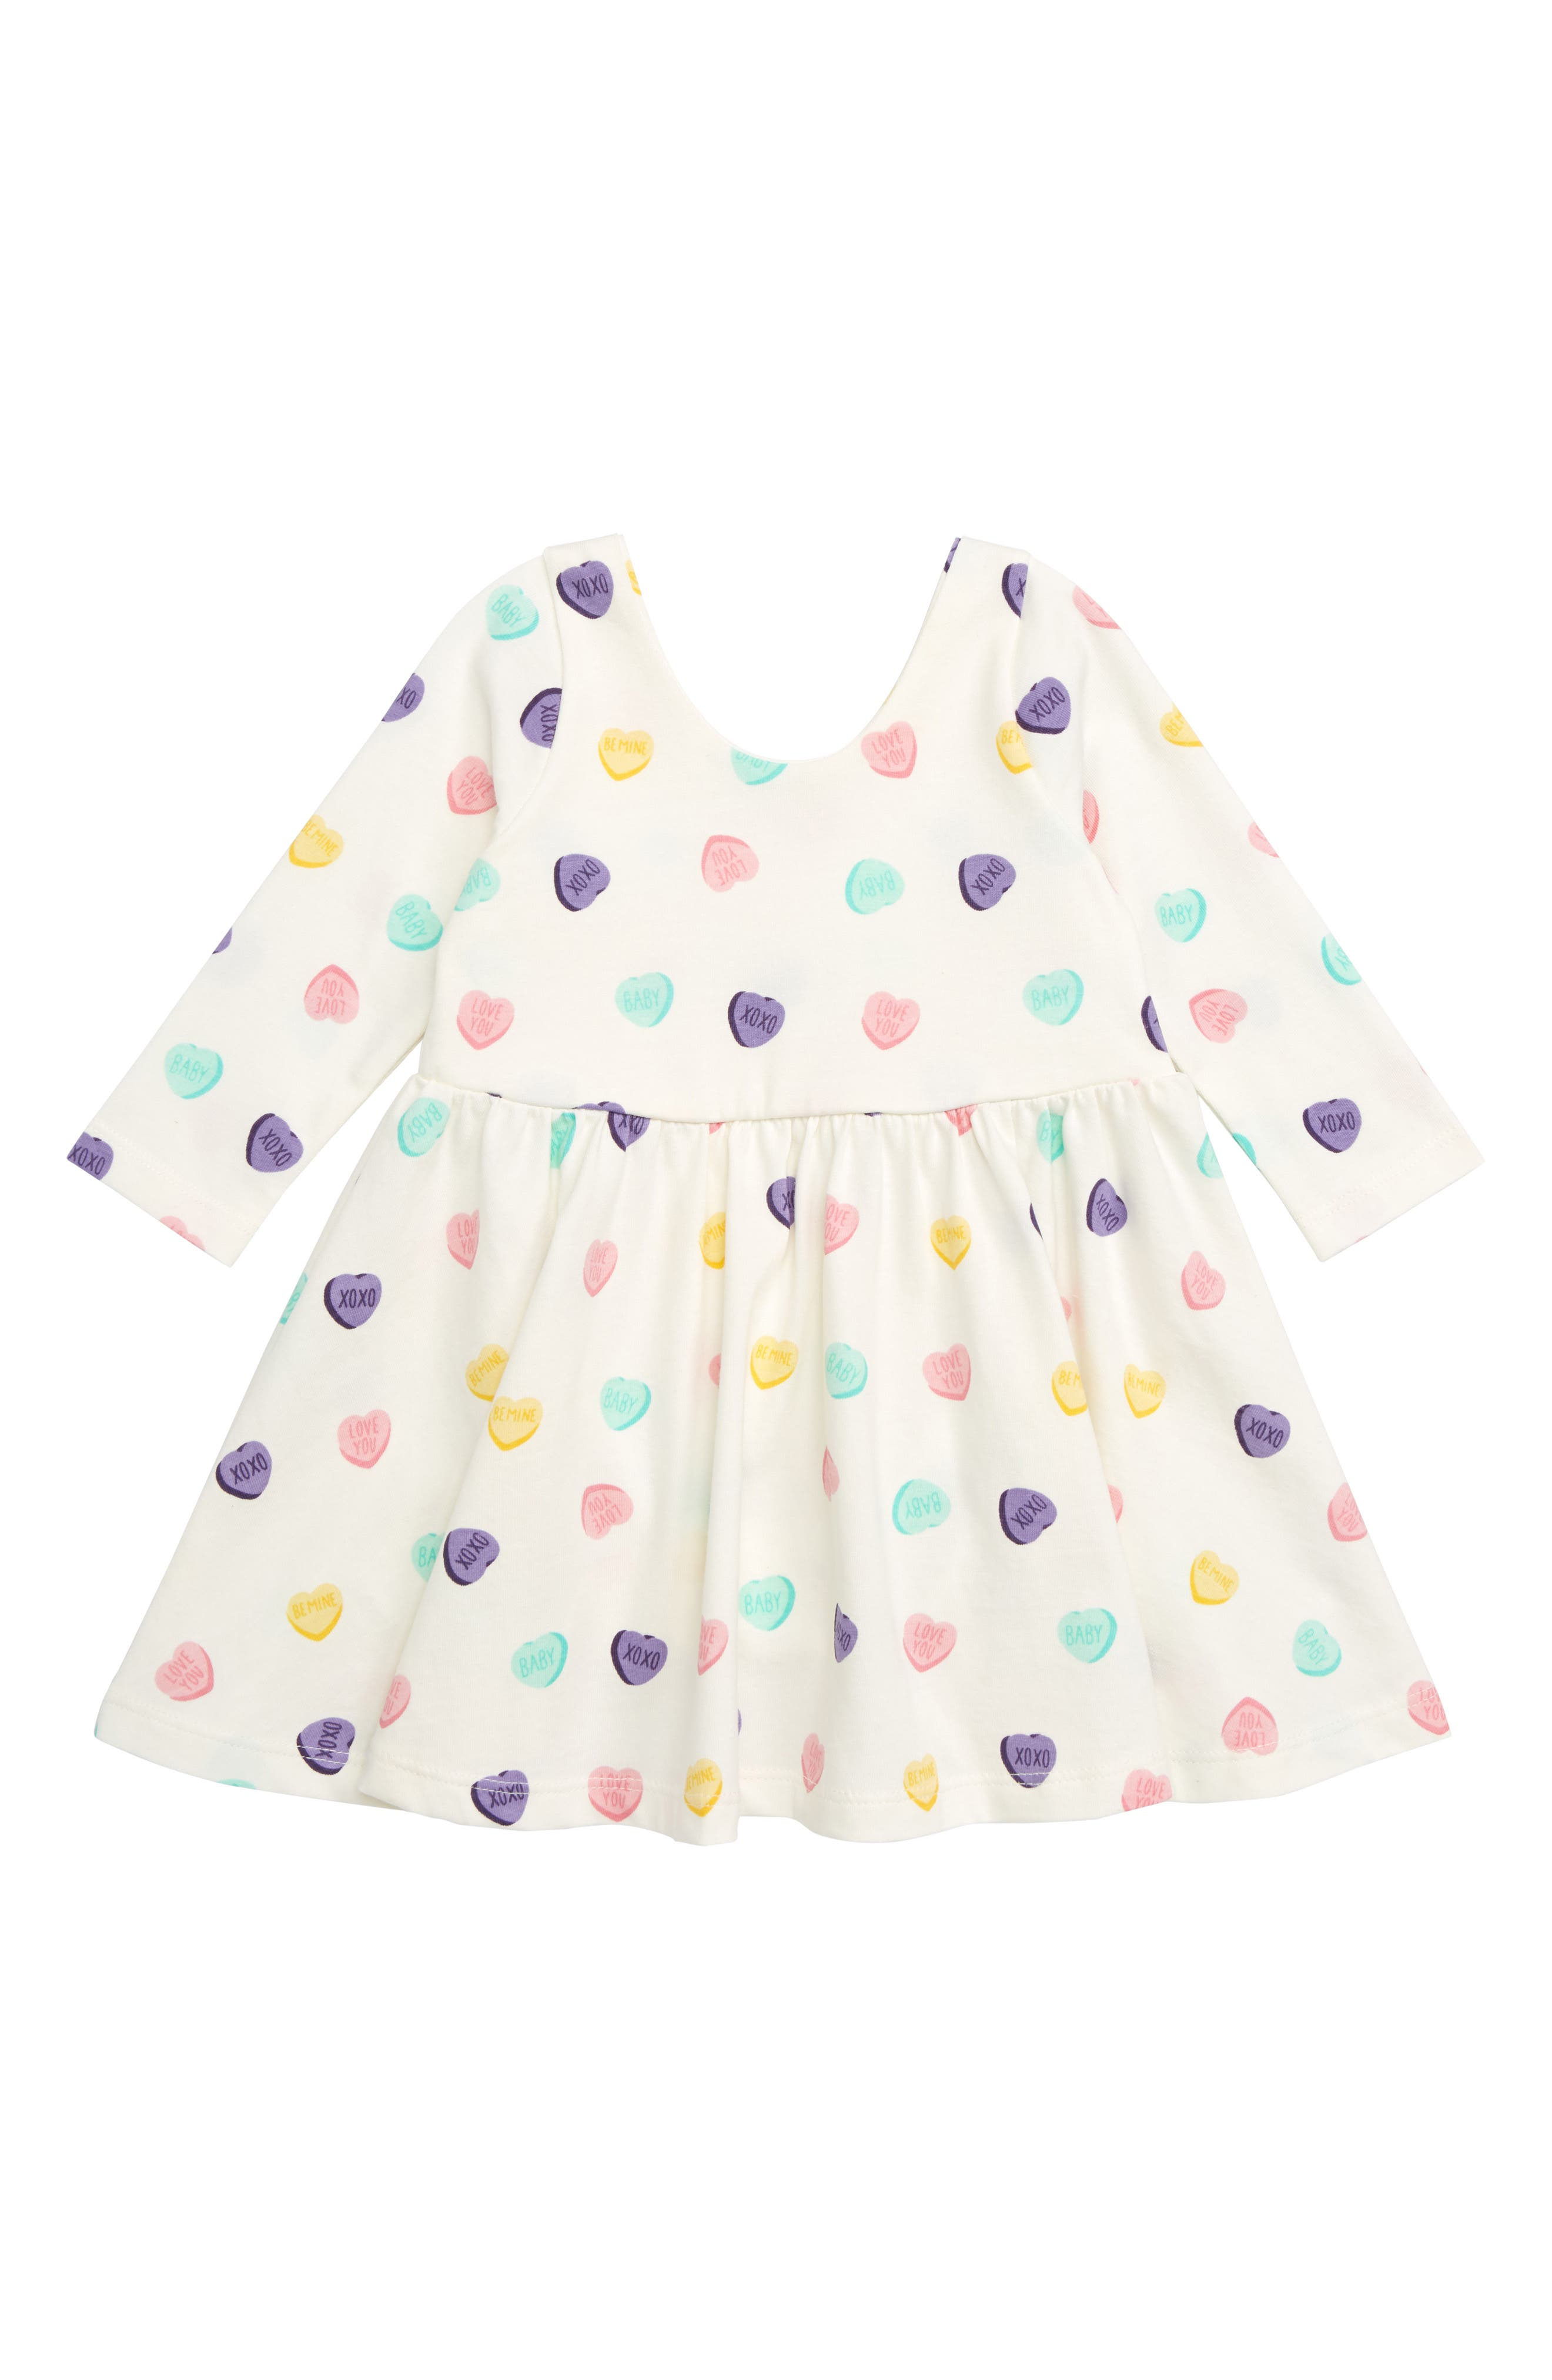 Let's Dance Sweetheart Organic Stretch Cotton Dress,                             Main thumbnail 1, color,                             SWEET HEARTS